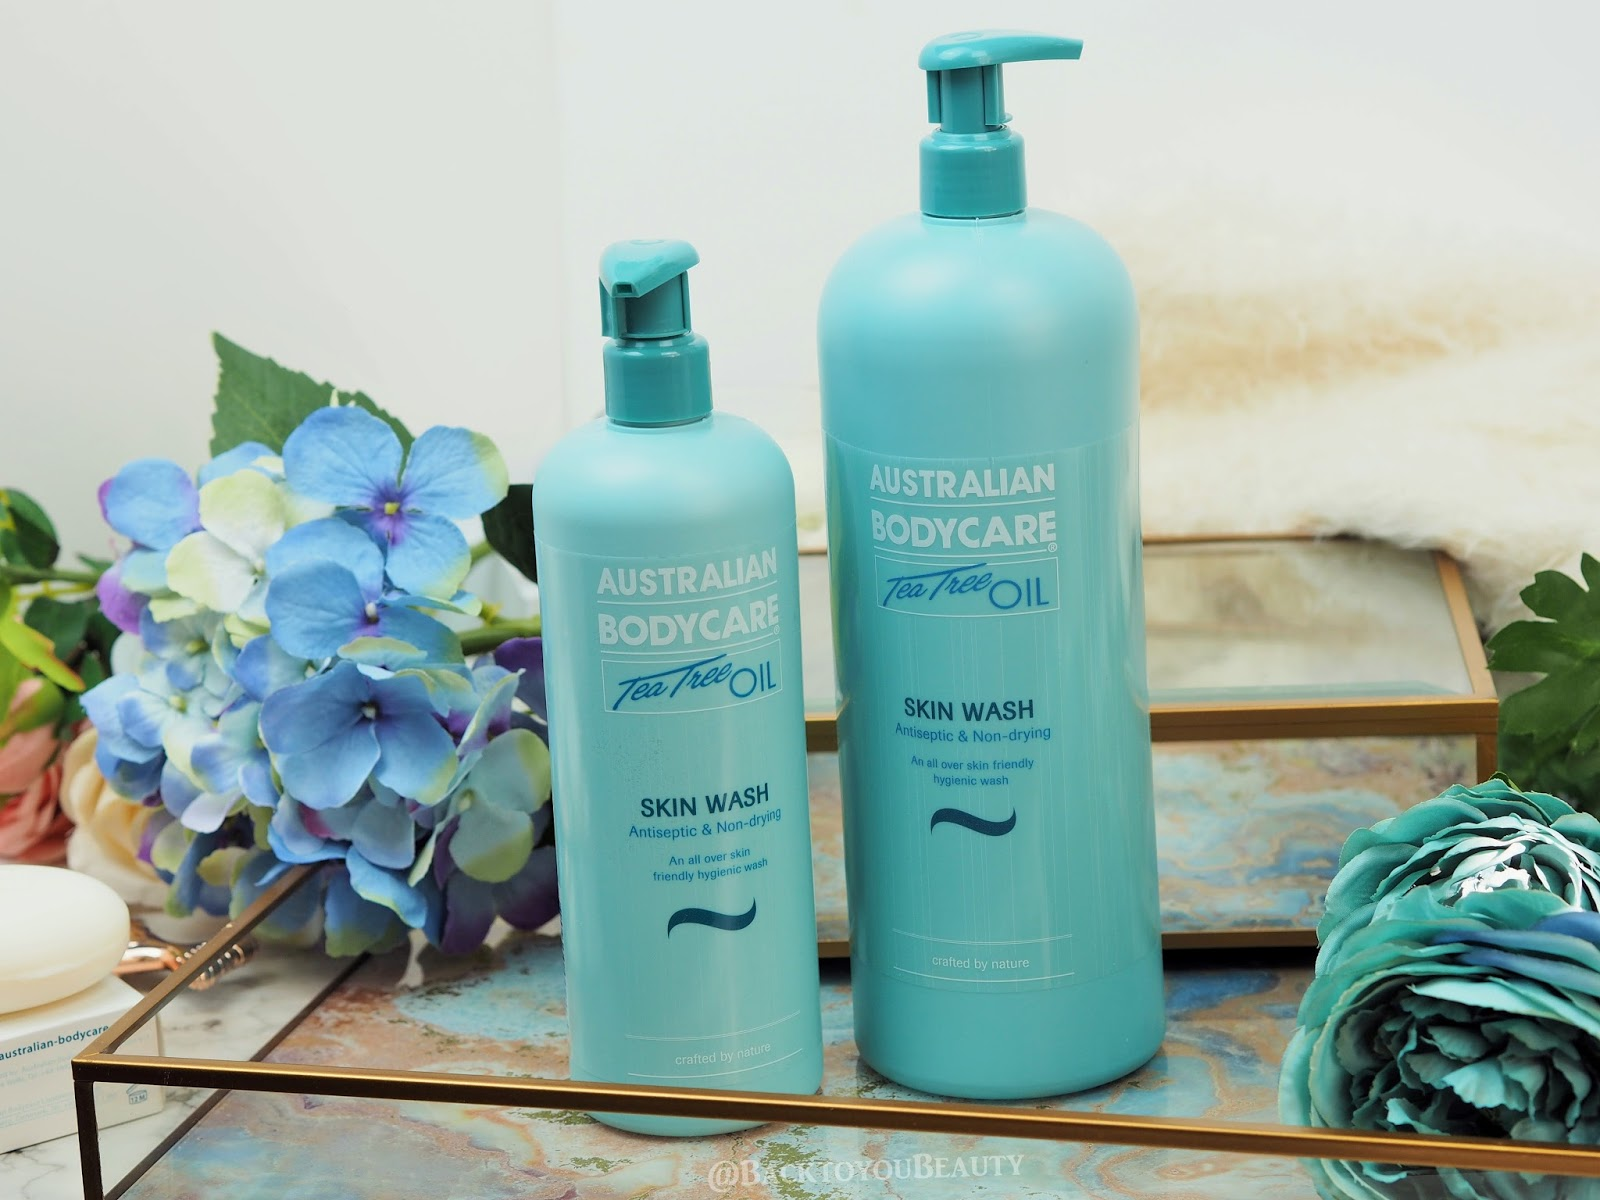 Australian Bodycare Skinwash Duo